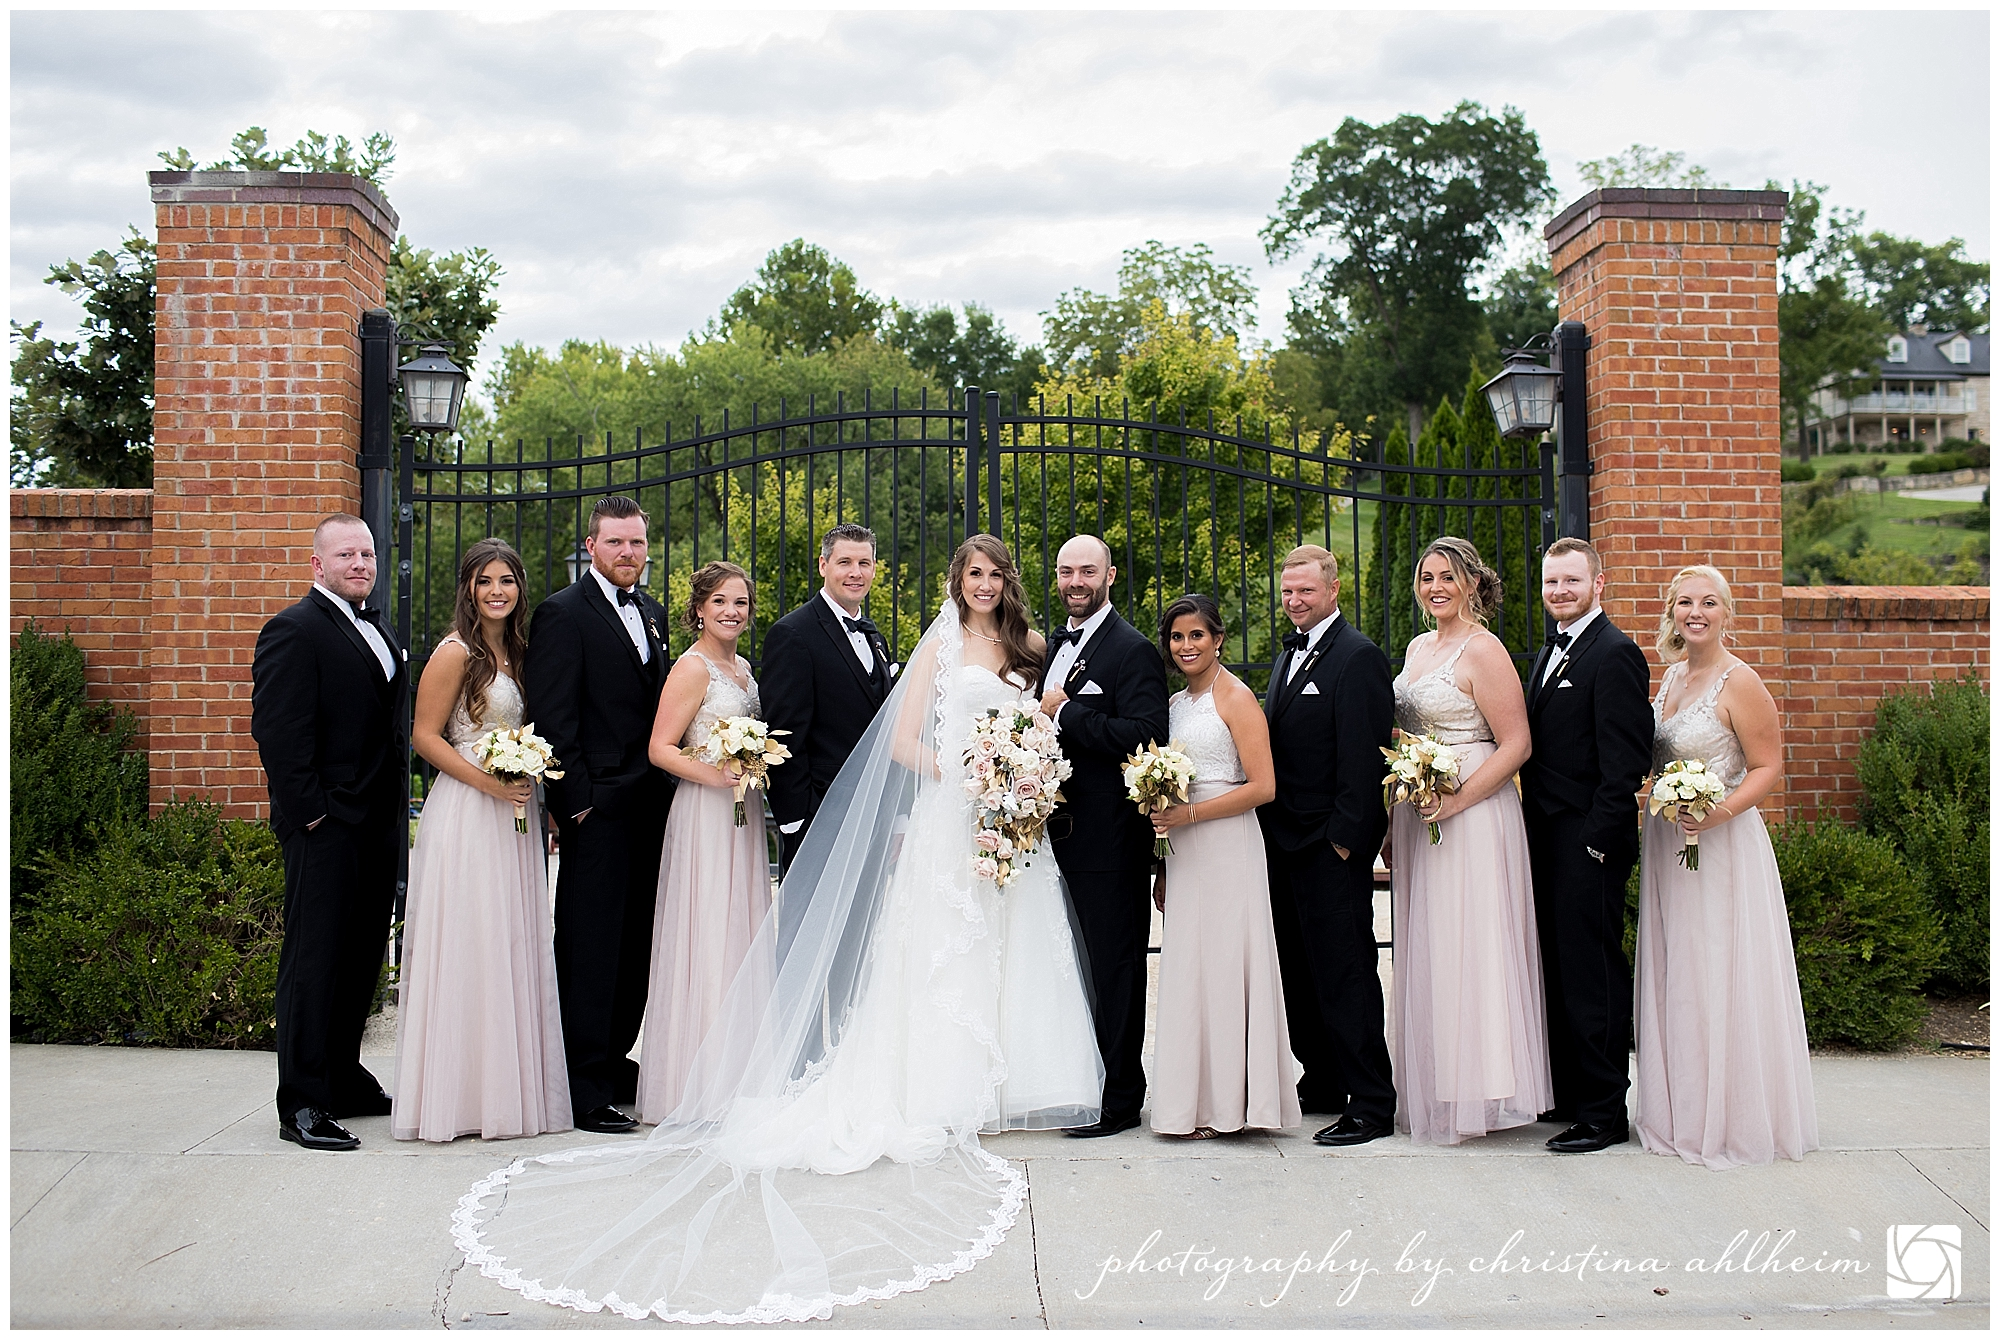 Hermann Hill James Bond Wedding Photography